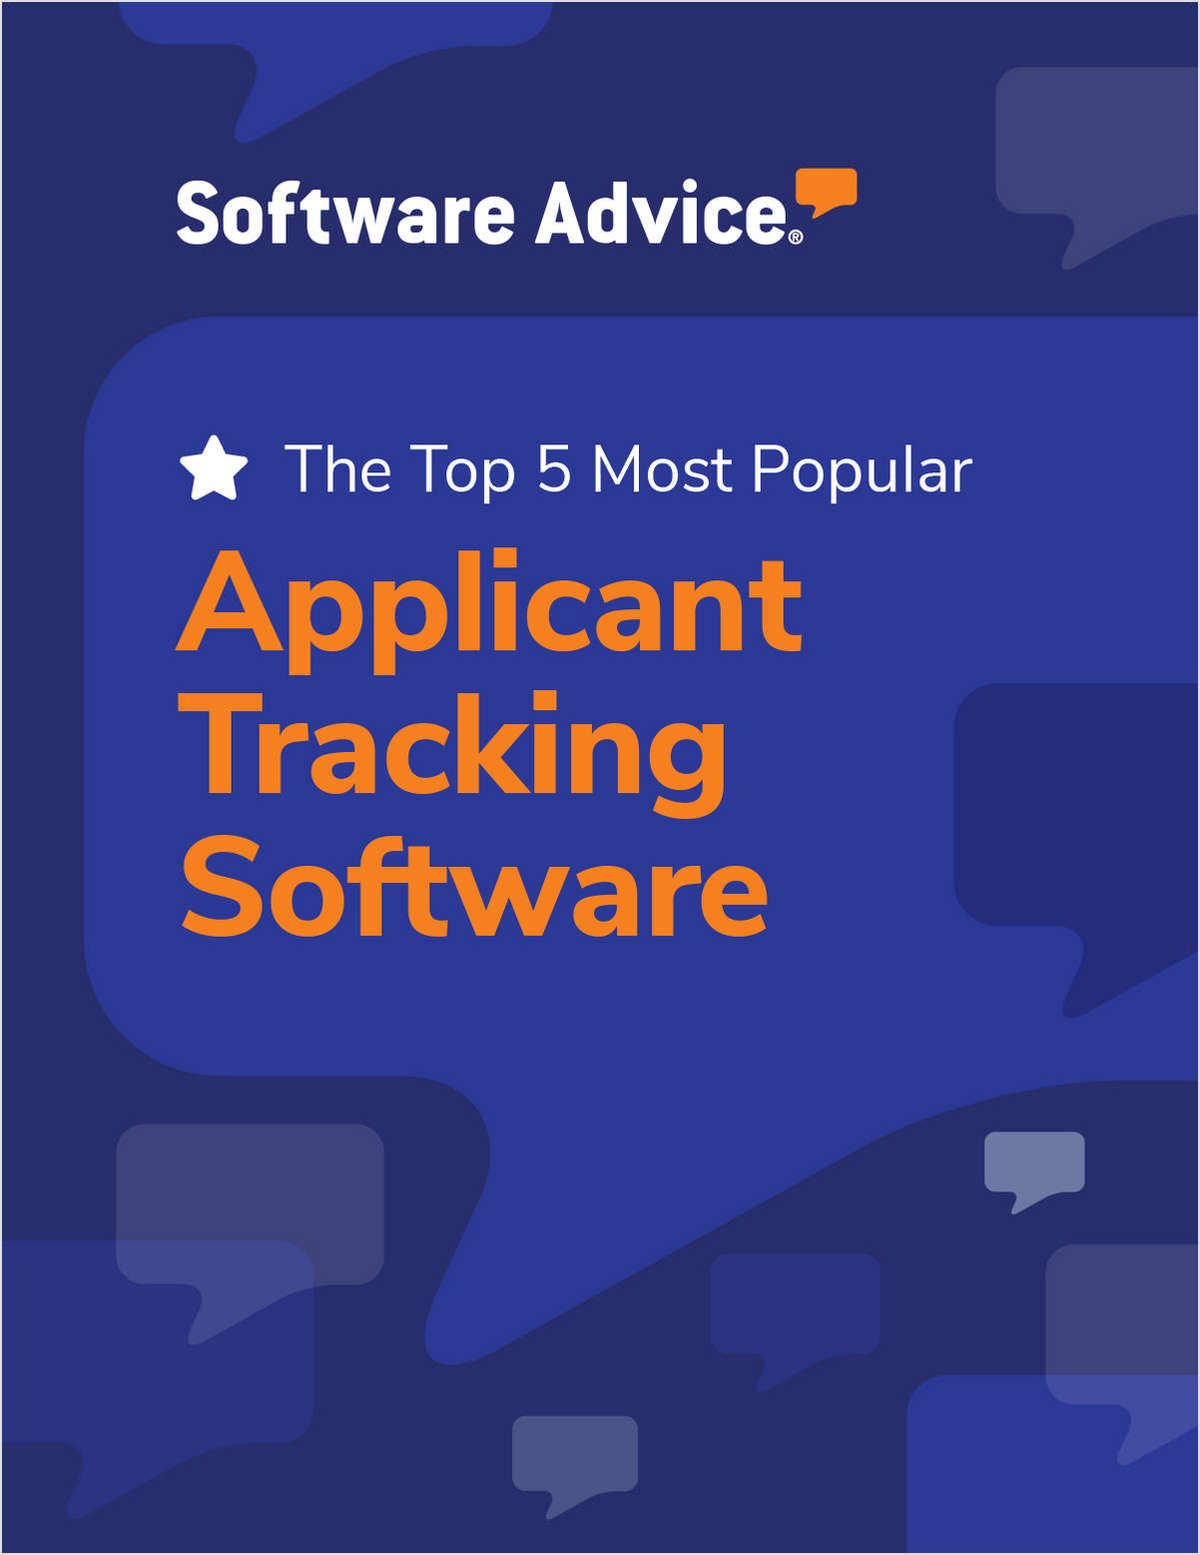 Software Advice's Top 5: Most Popular Applicant Tracking Software